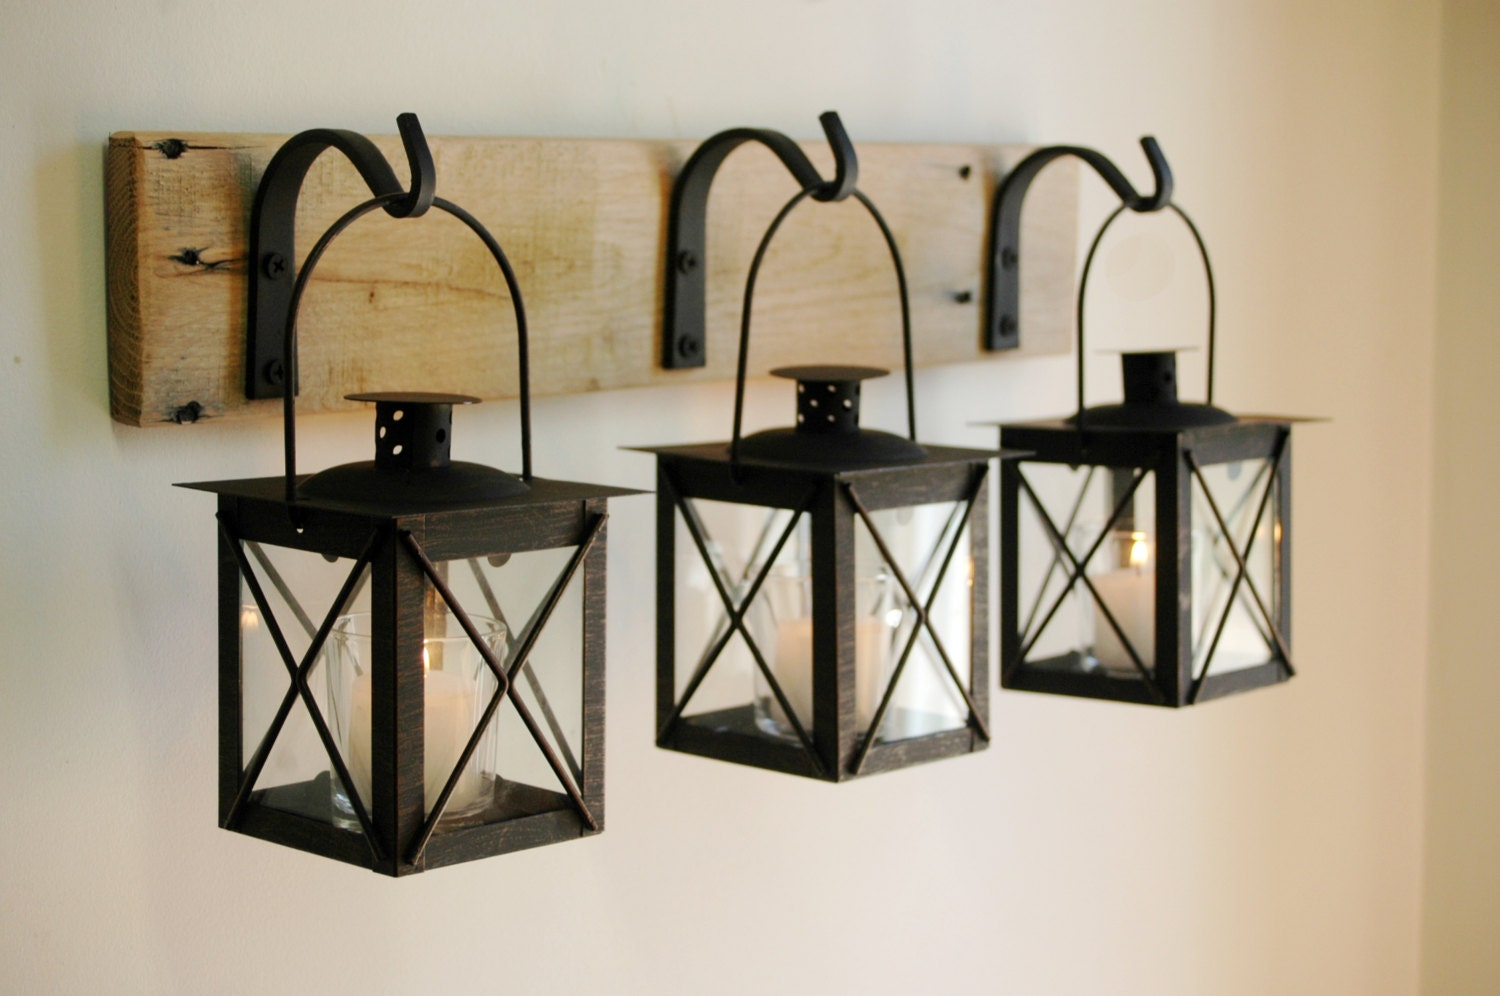 Black Wall Decor New Black Lantern Trio Wall Decor Home Decor Rustic Decor Inspiration